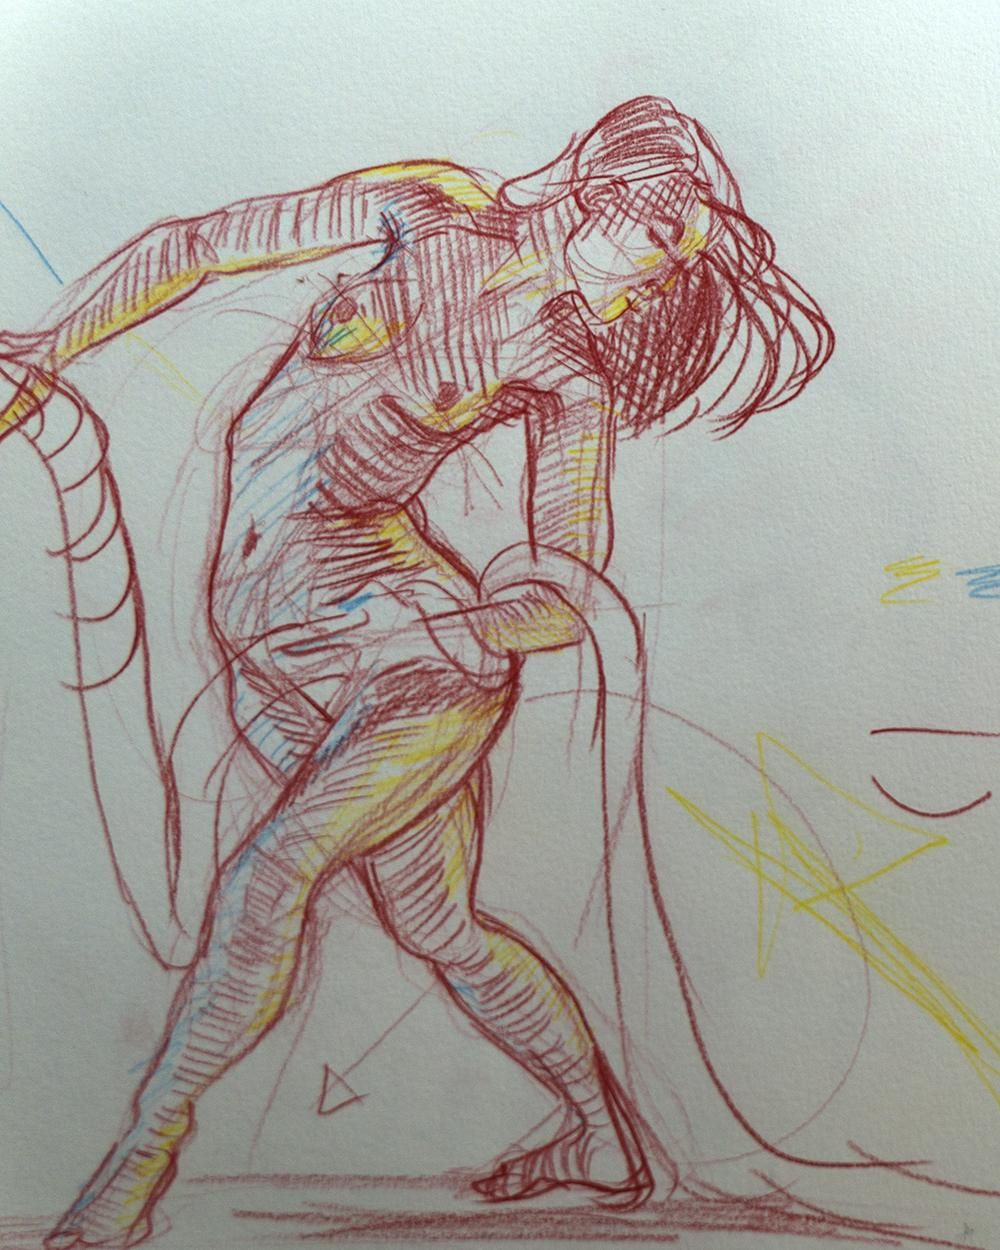 Figure Drawing - Sample Project! - image 7 - student project